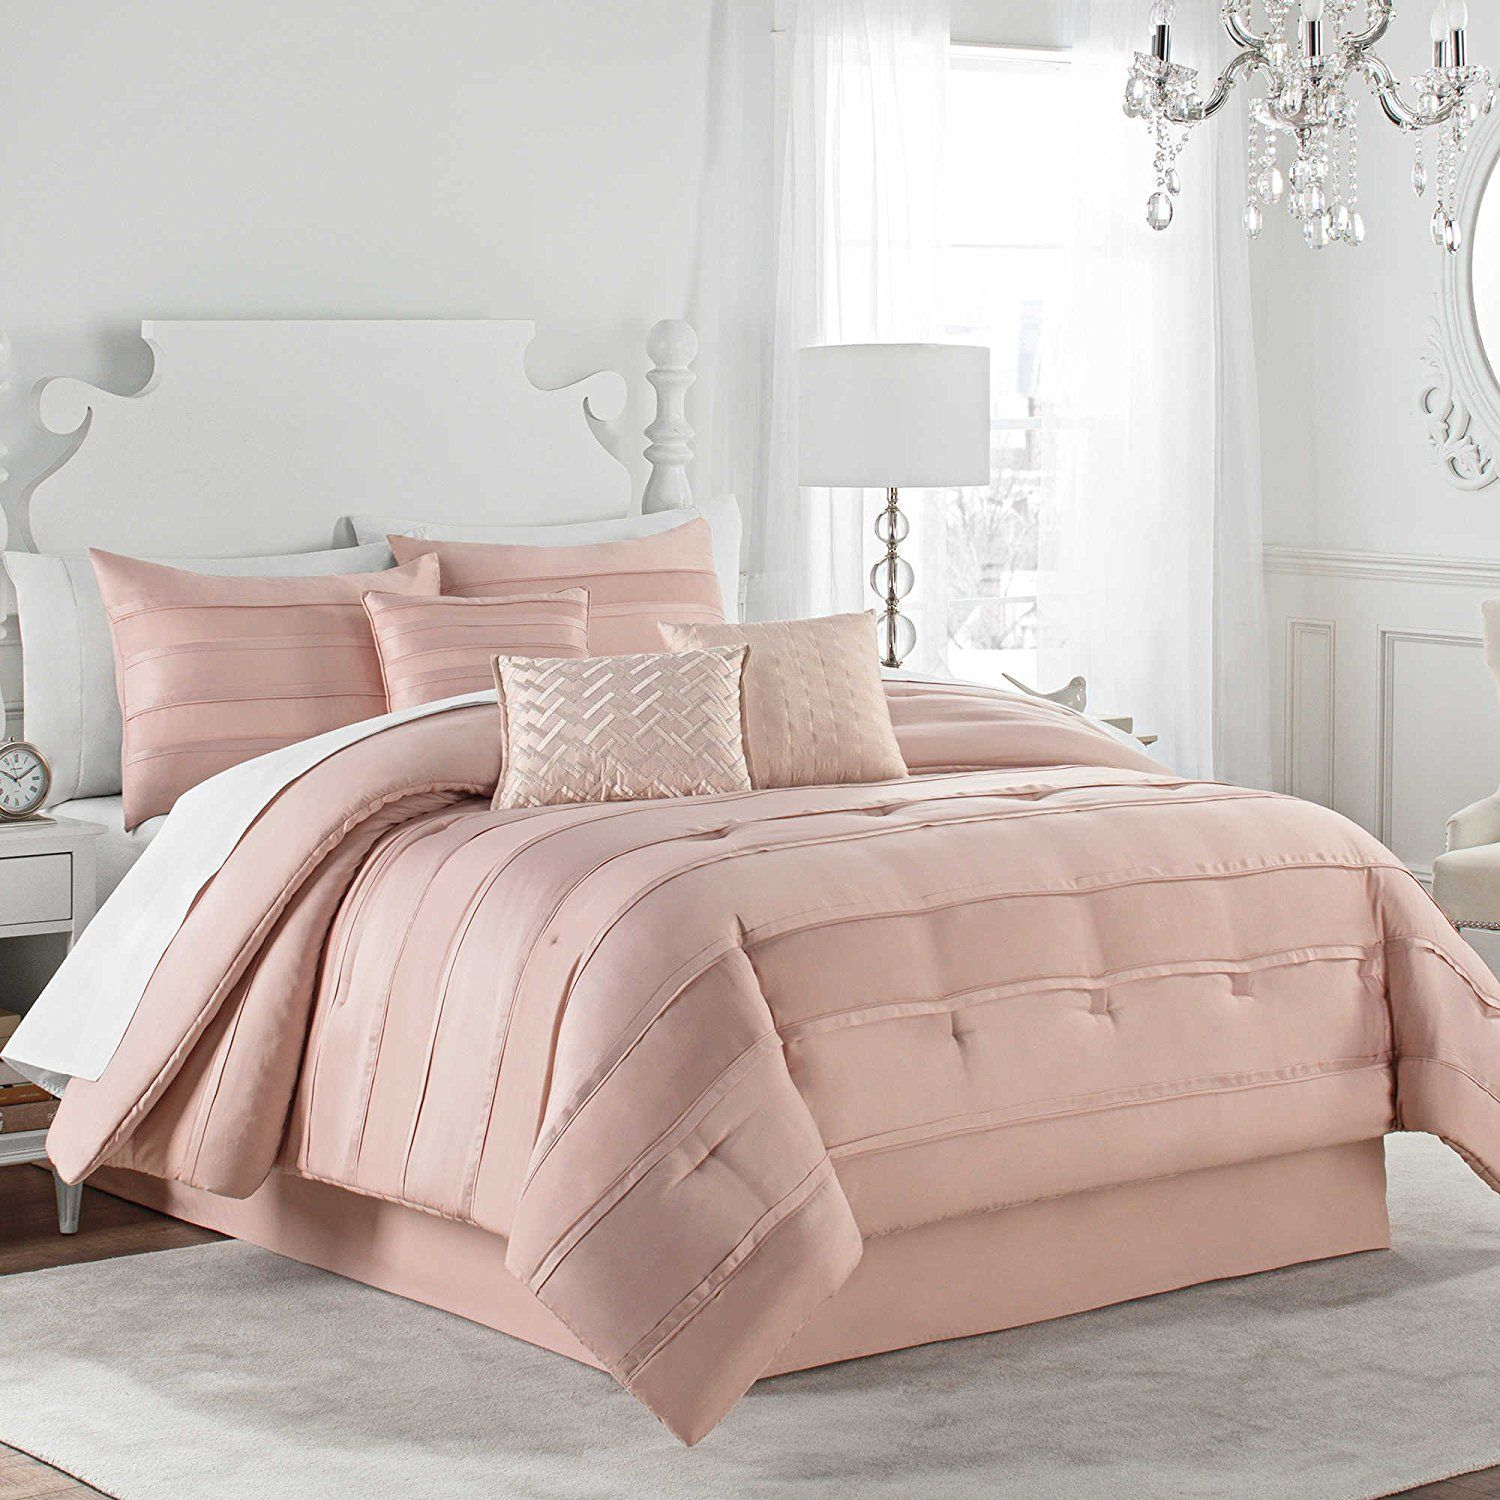 New Matte Satin Pleated Luxury Elegant 7 Piece King Size